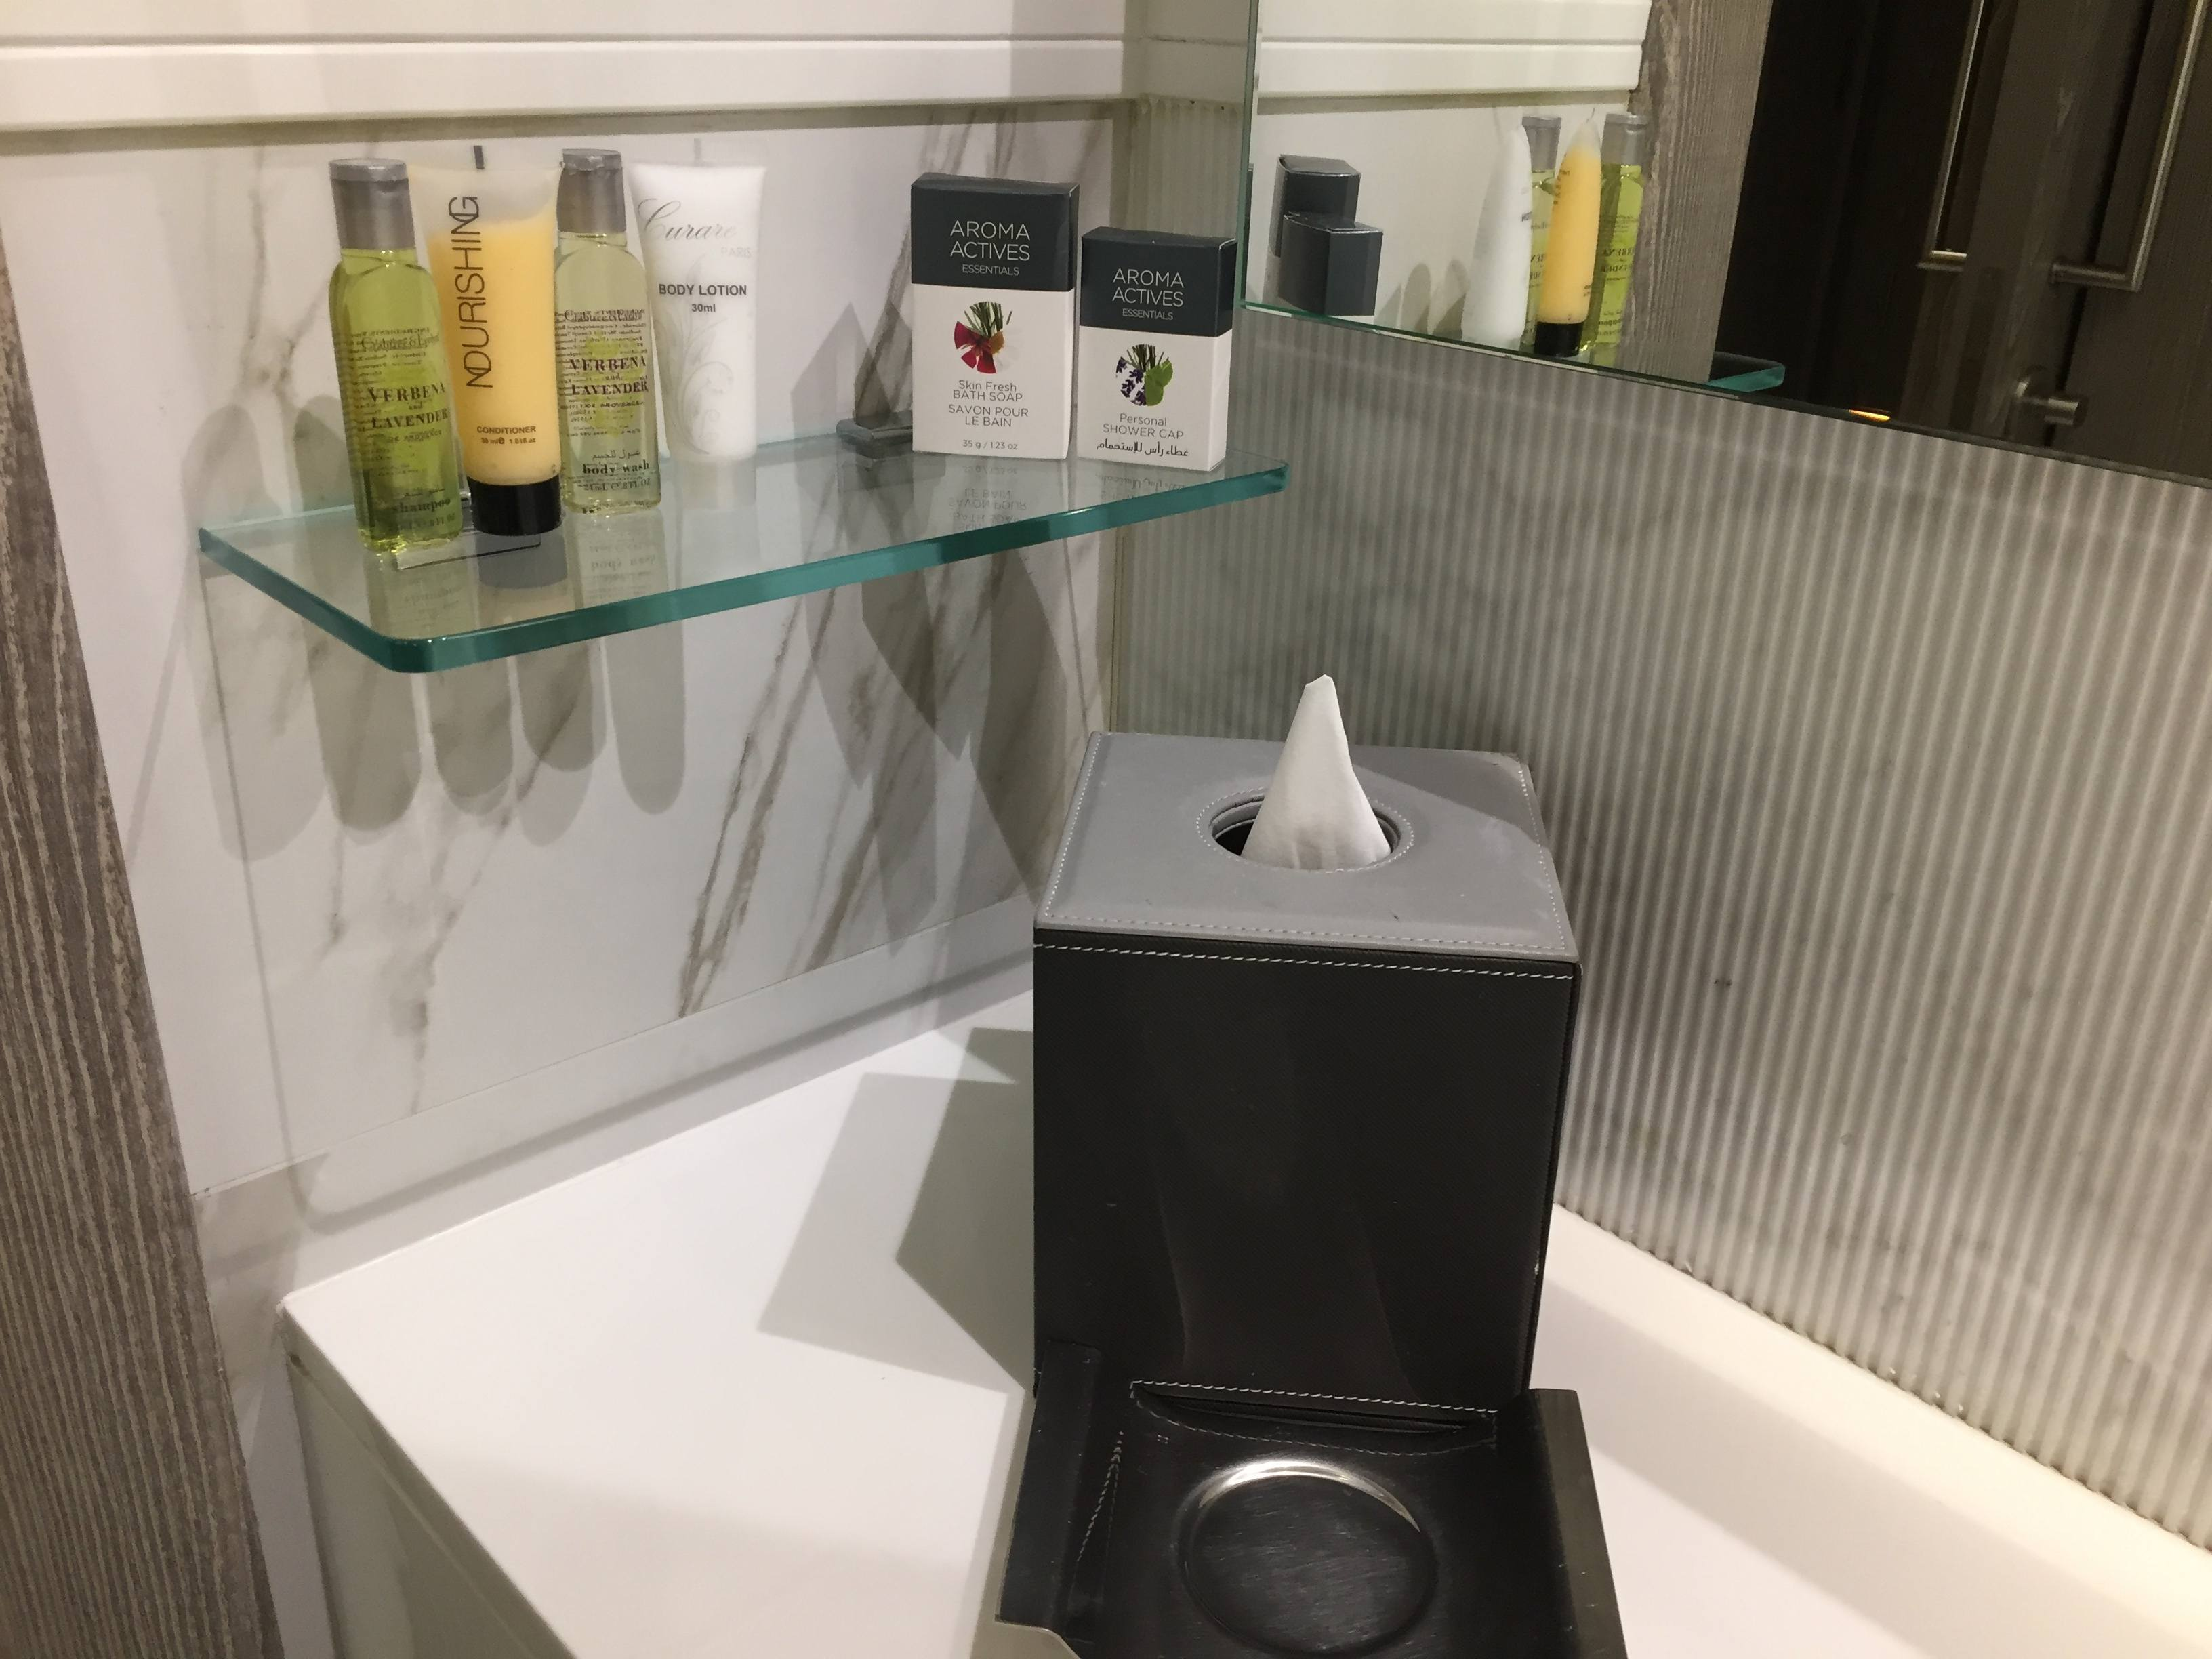 DoubleTree Doha bath amenities